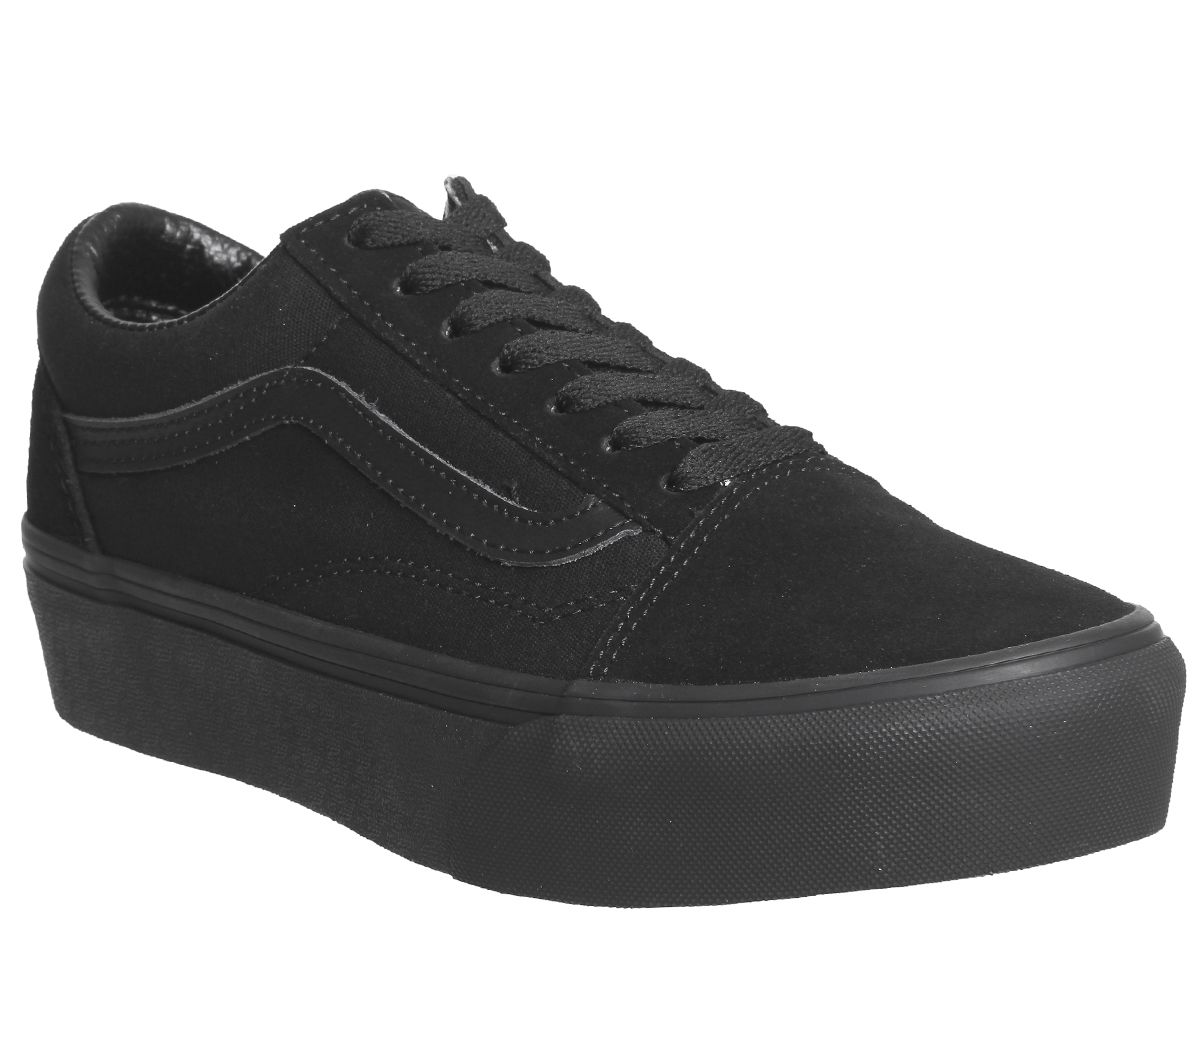 9afcf89caeef96 Vans Old Skool Platforms Black - Hers trainers